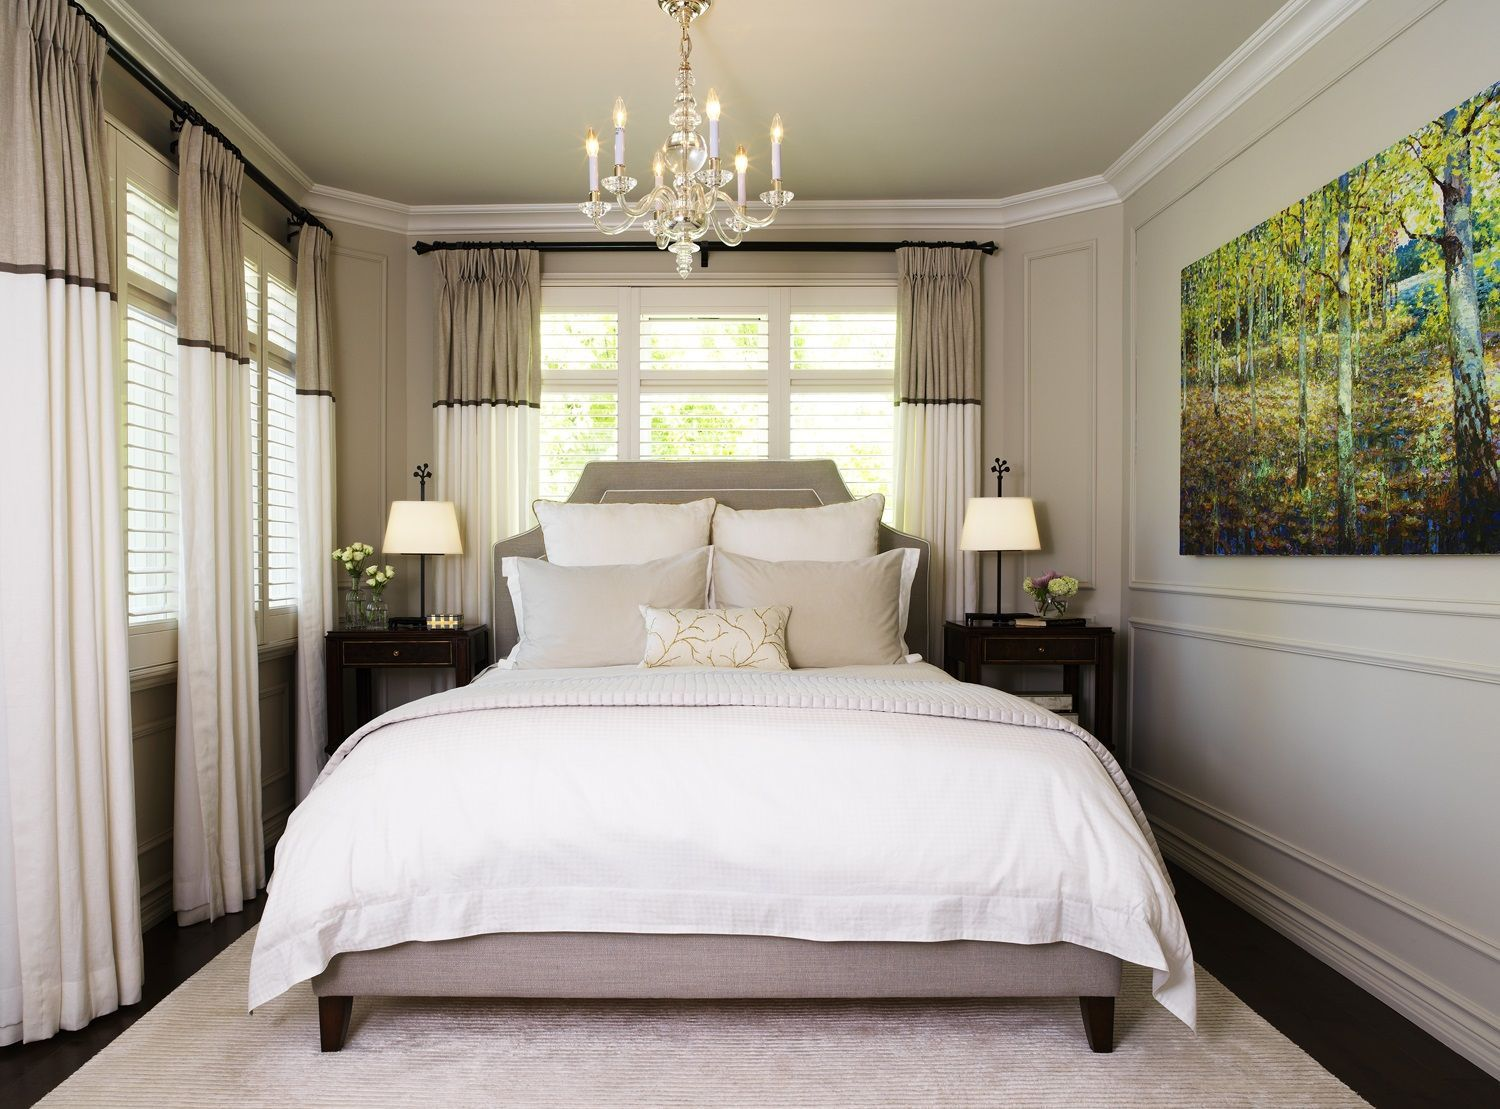 How To Make The Most Of A Small Master Bedroom Small Master Bedroom Tiny Bedroom Remodel Bedroom